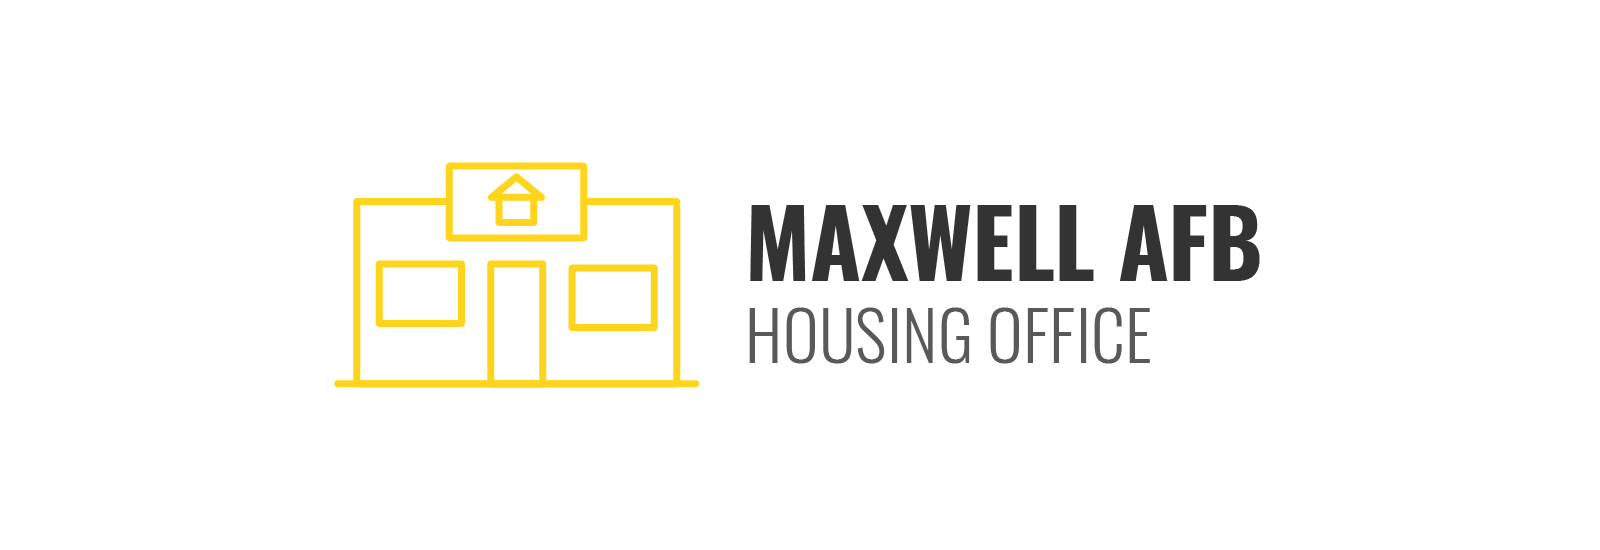 Maxwell AFB Housing Office